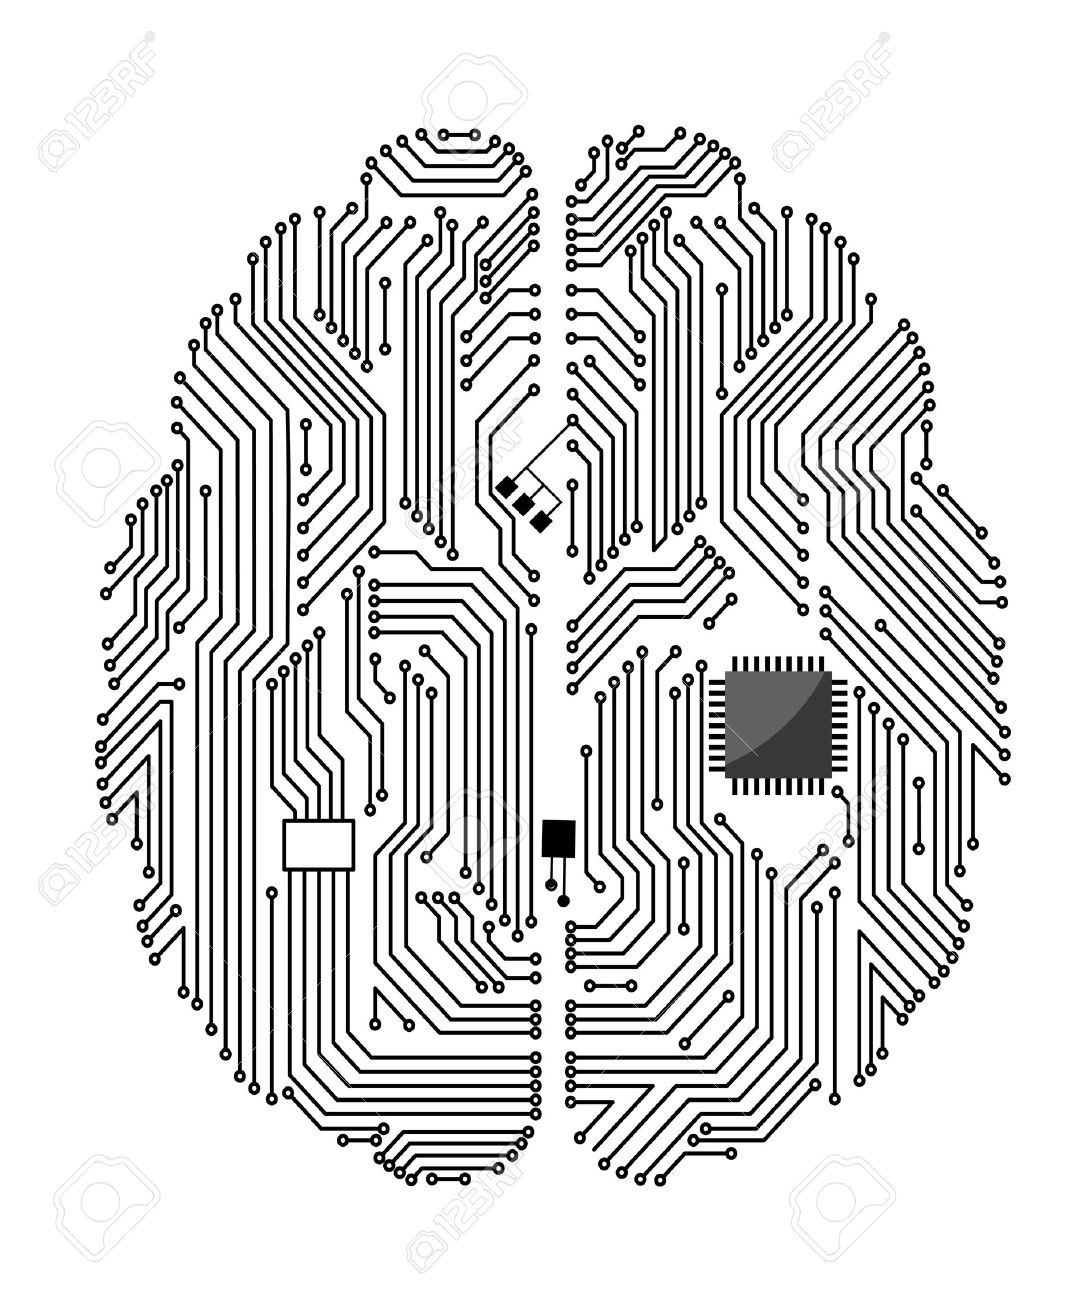 Motherboard brain on white background for technology concept design - 13604025